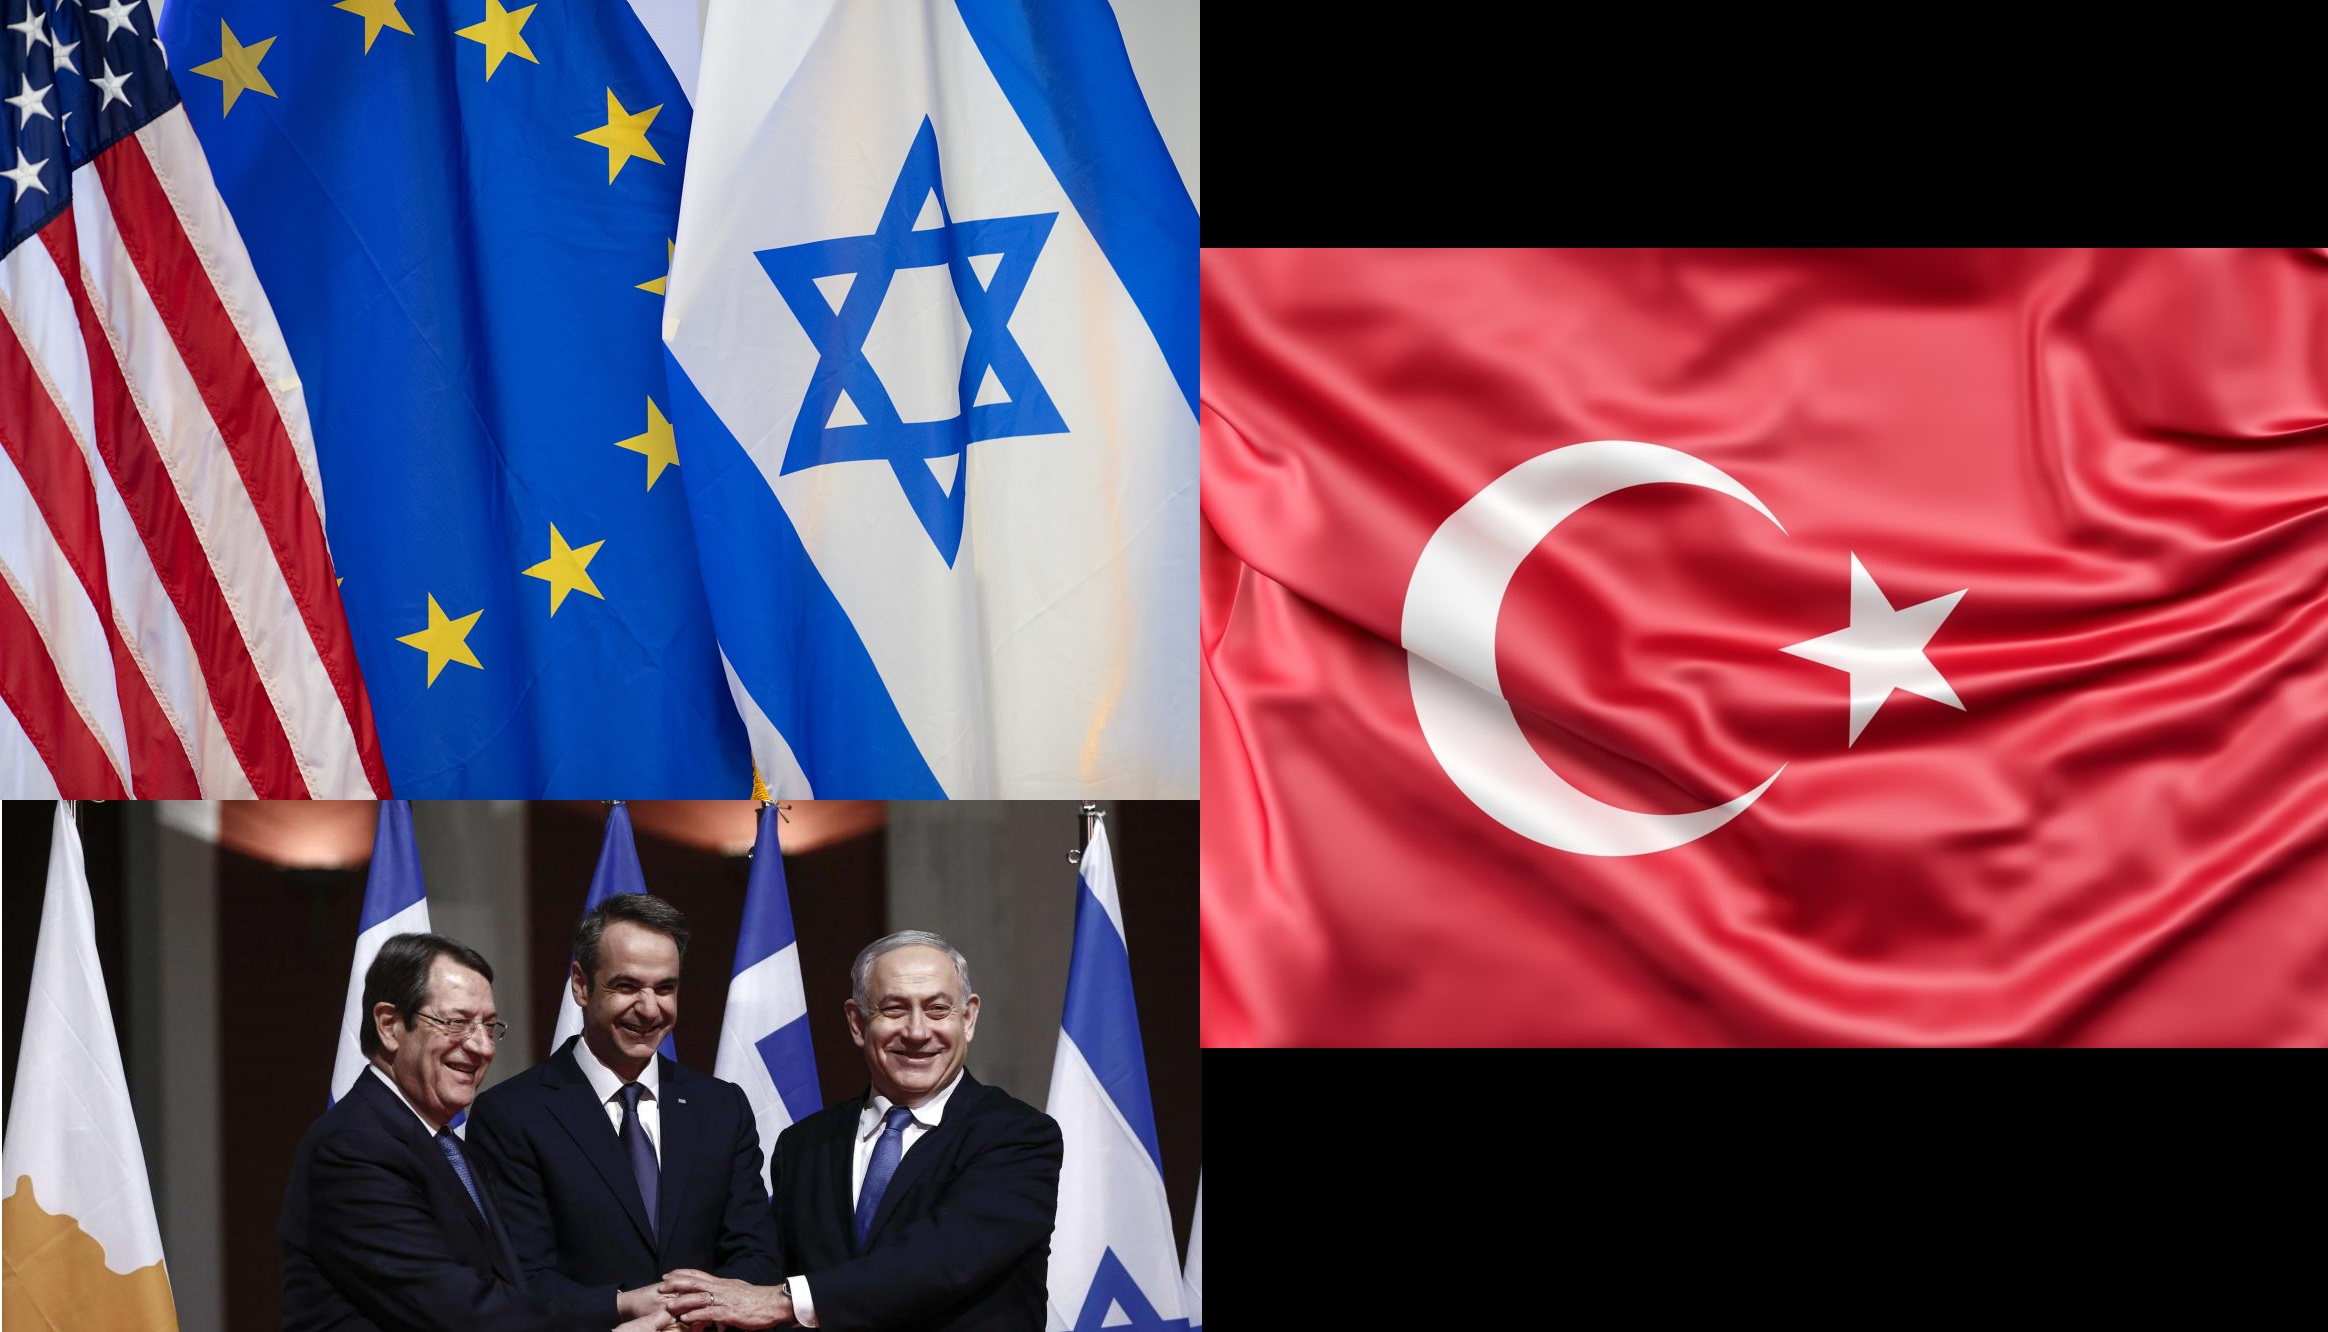 turkey-greece-transnational-elite-israel